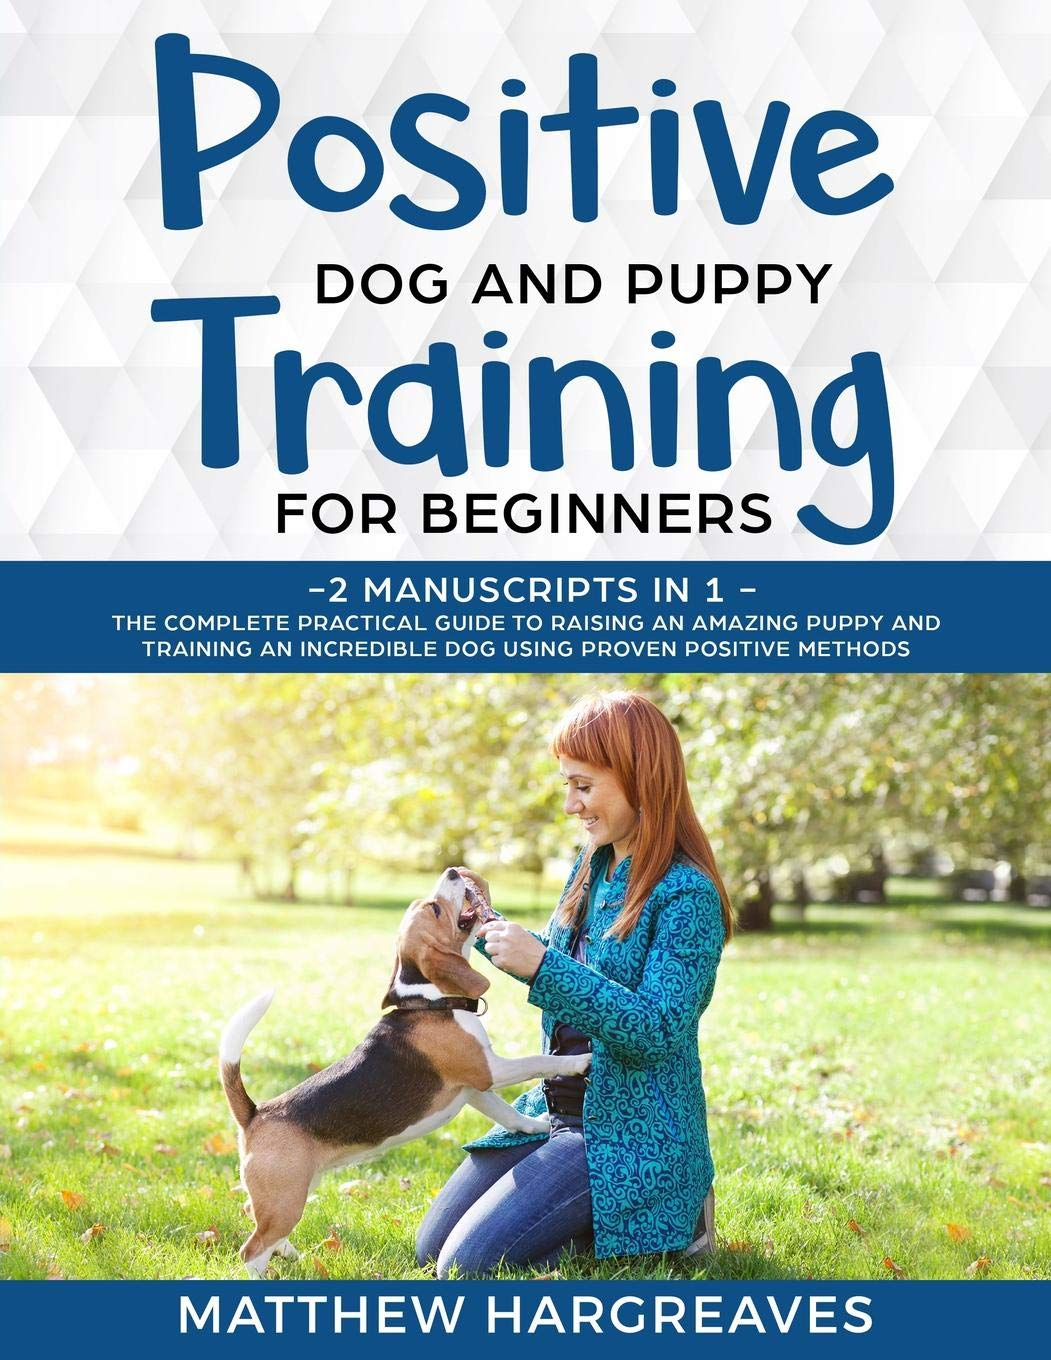 Positive-Dog-and-Puppy-Training-for-Beginners-2-Manuscripts-in-1-The-Complete-Practical-Guide-to-Raising-an-Amazing-Puppy-and-Training-an-Incredible-Dog-using-Proven-Positive-Methods